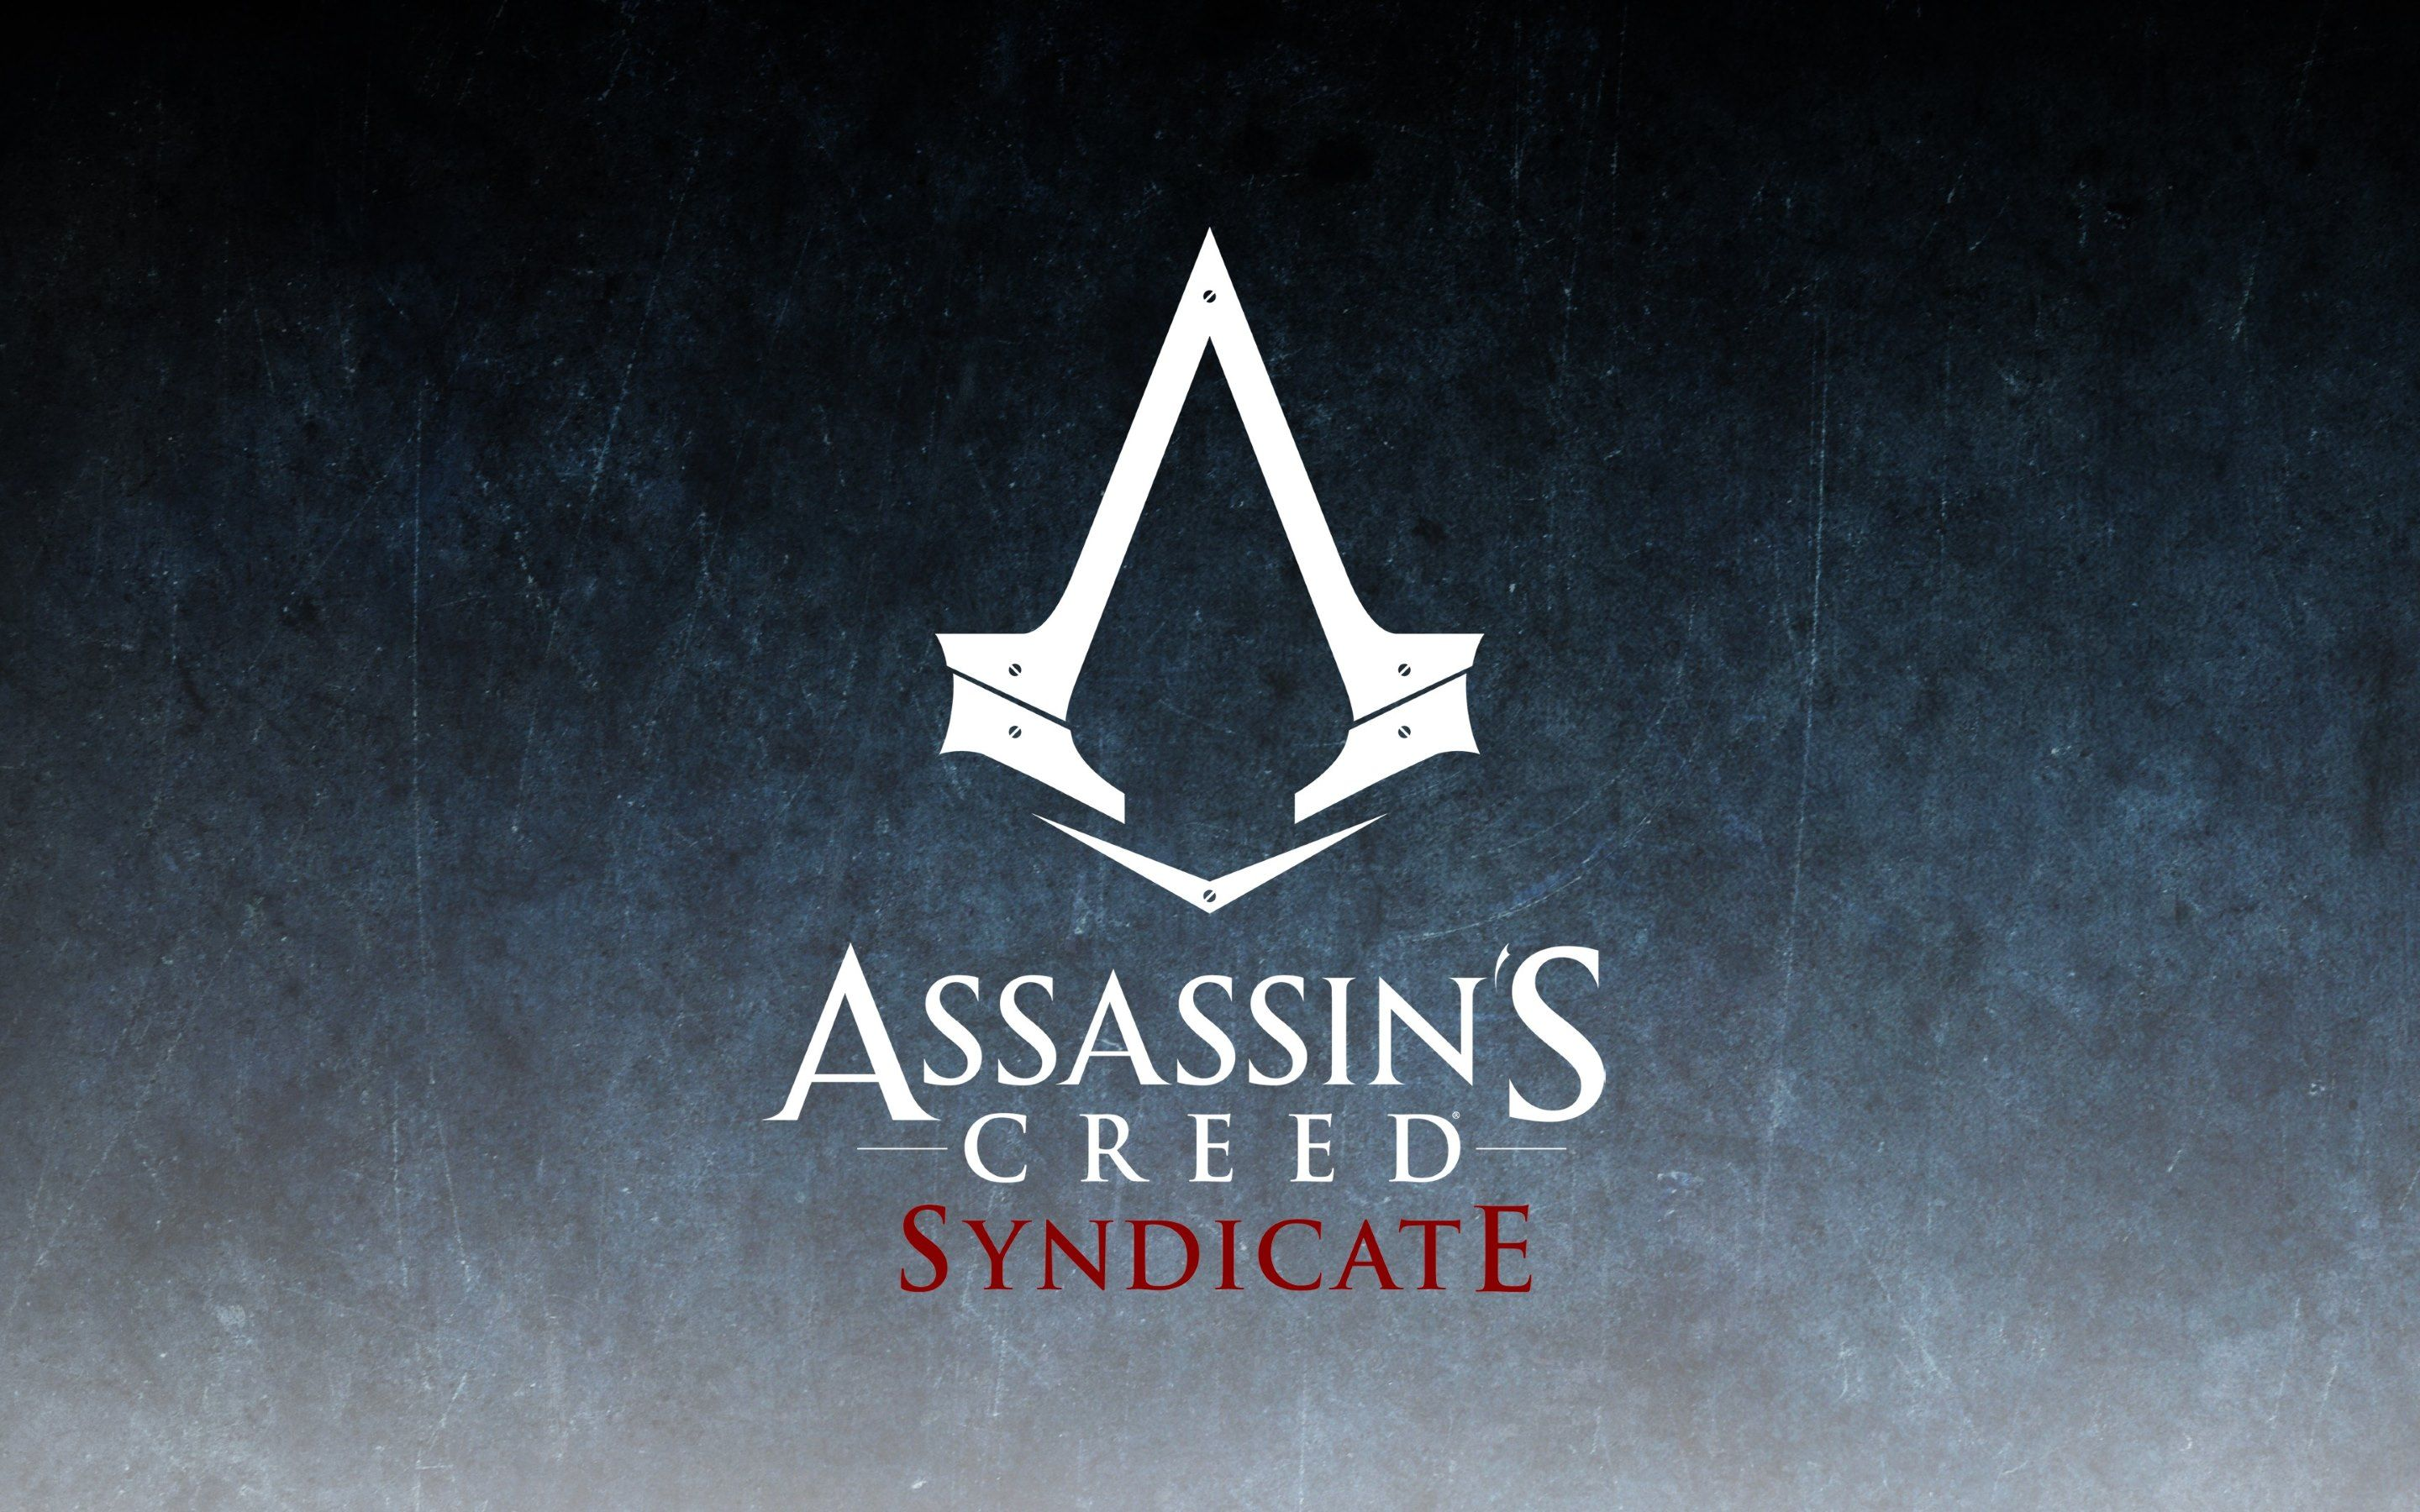 assassins creed brotherhood wallpapers hd wallpapers pinterest